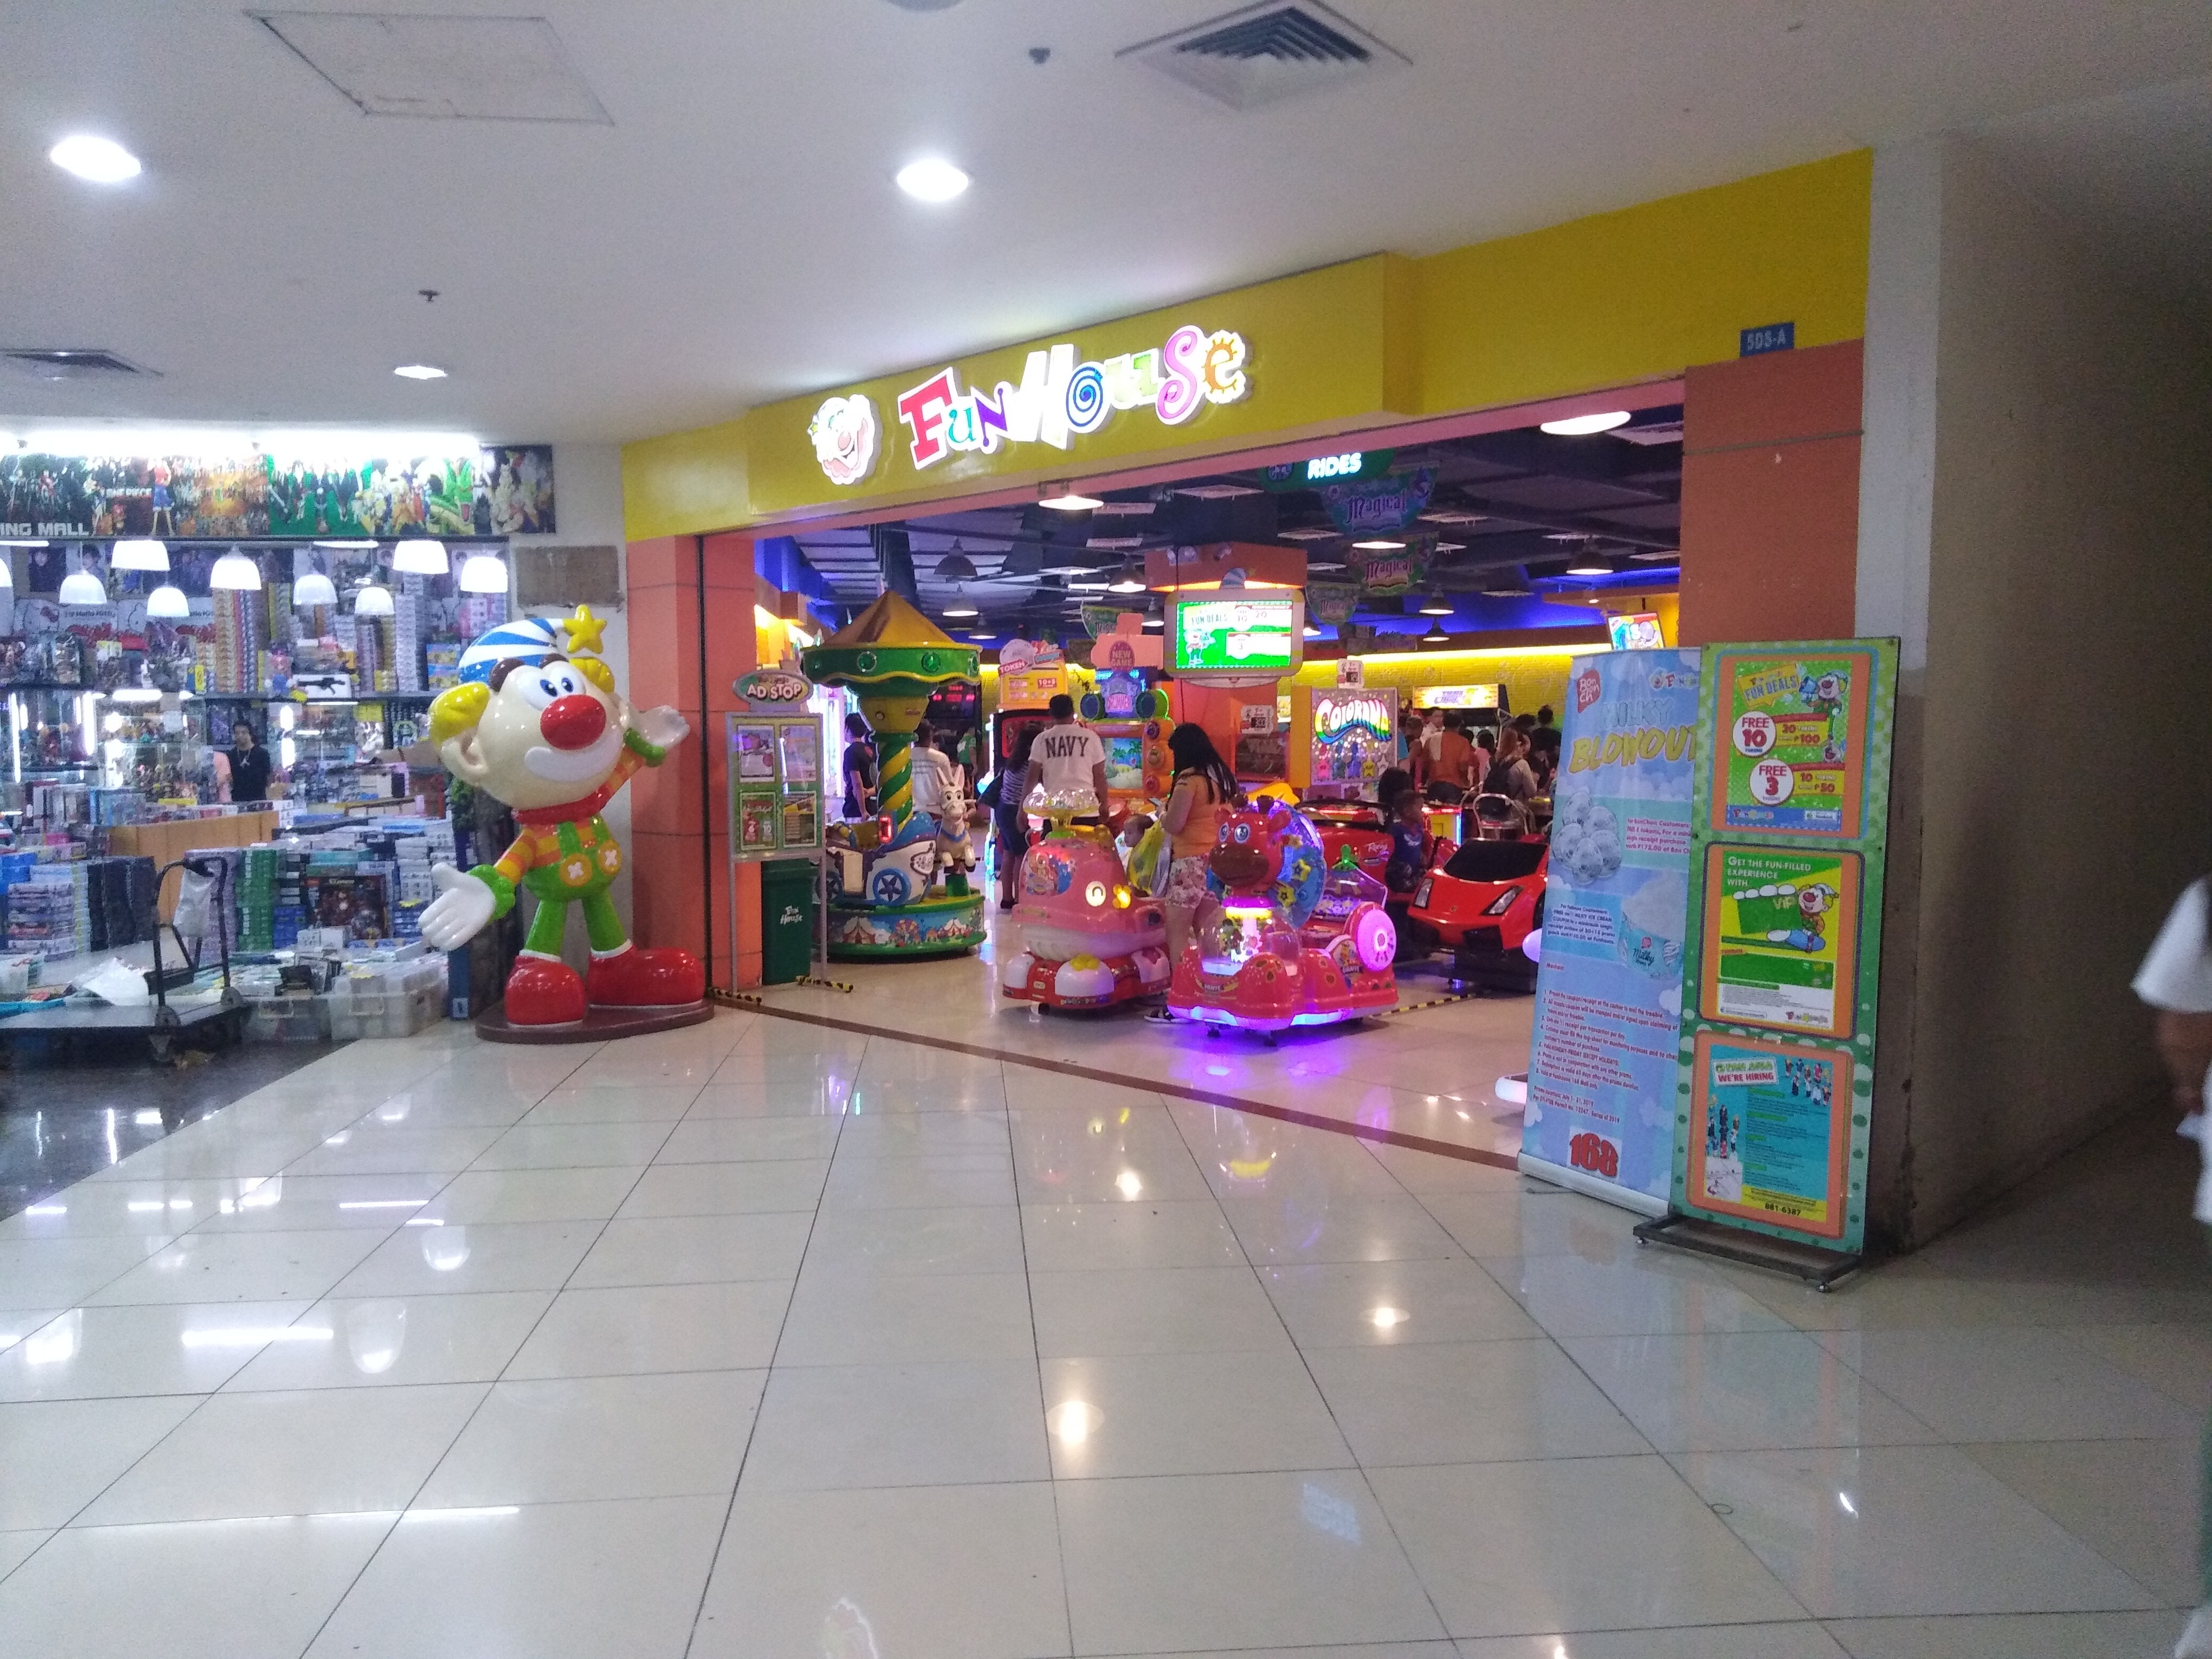 Entrance of FunHouse 168 Mall